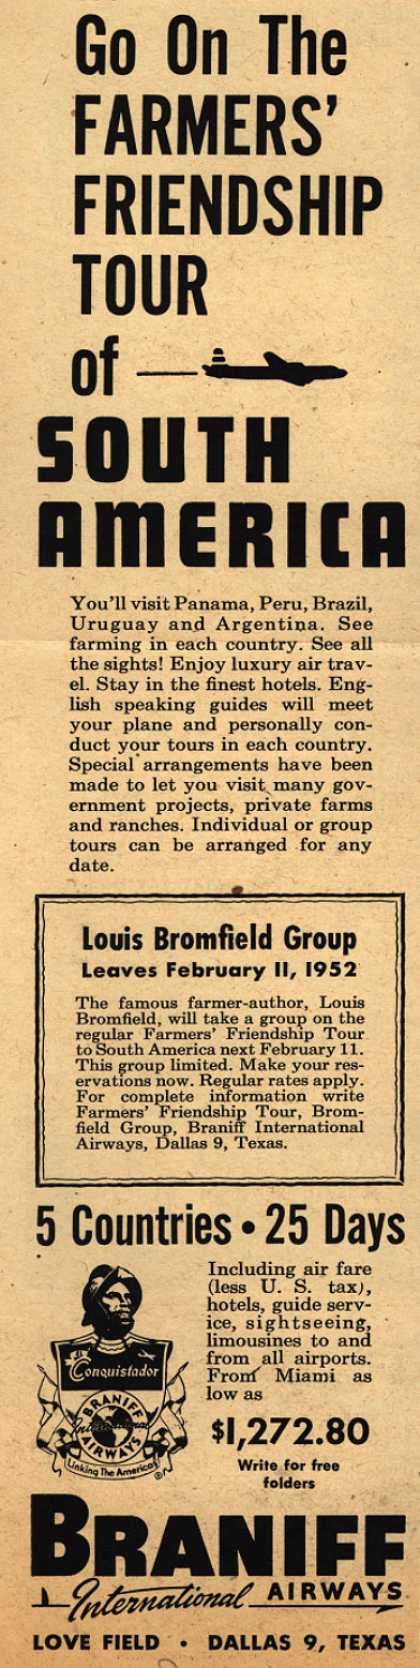 Braniff International Airway's South America tour – Go On The Farmer's Friendship Tour (1951)